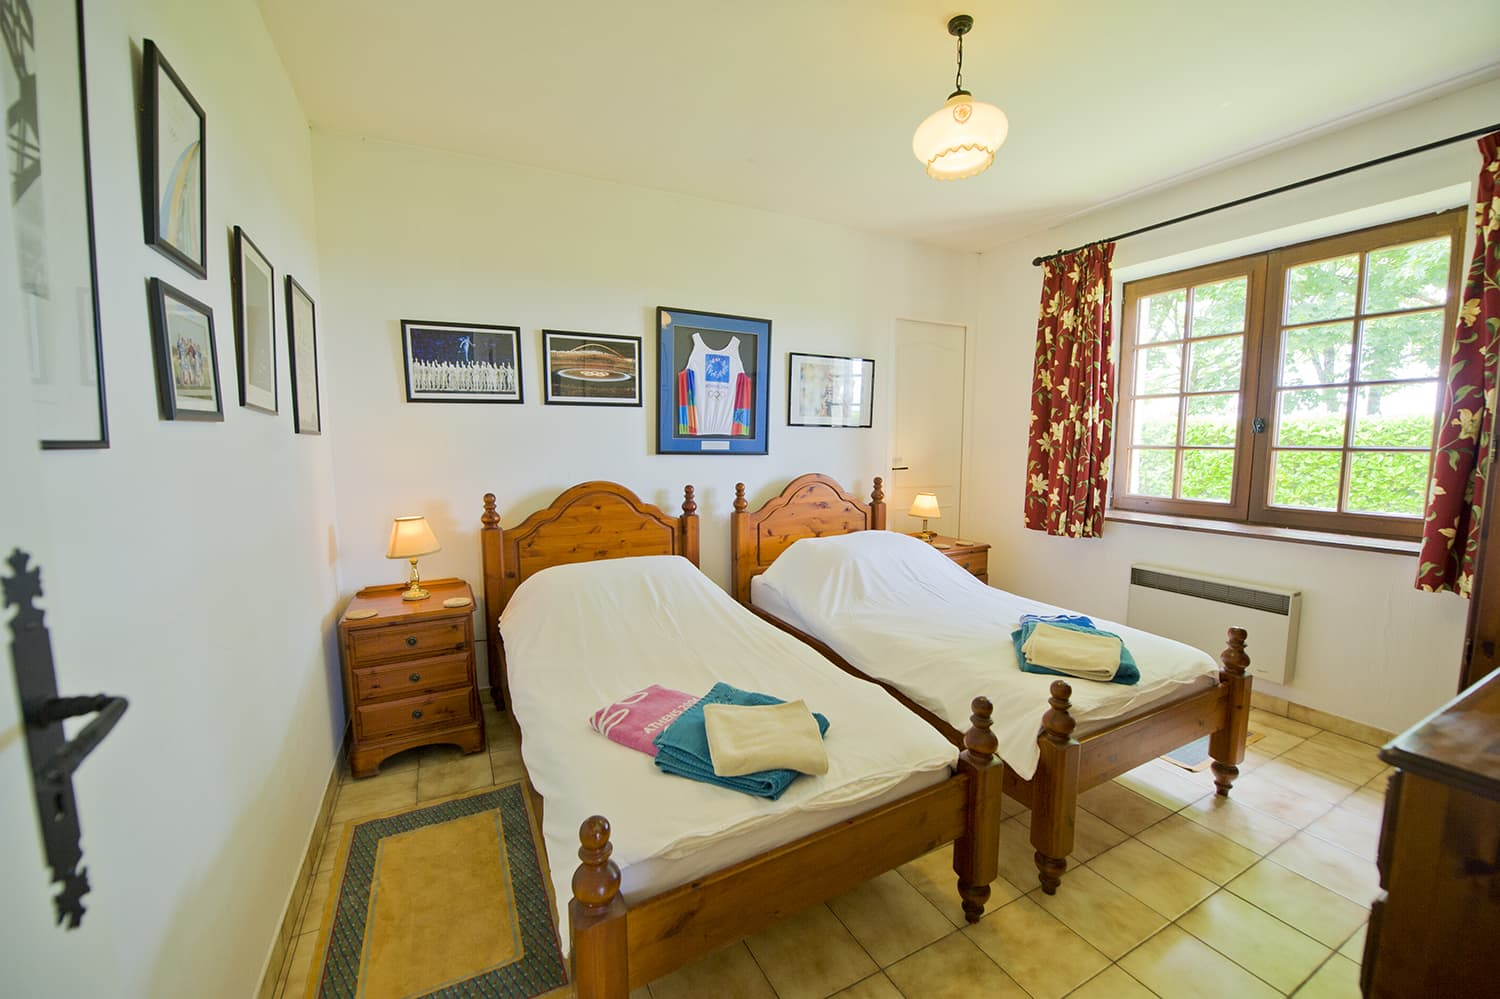 Bedroom in holiday accommodation